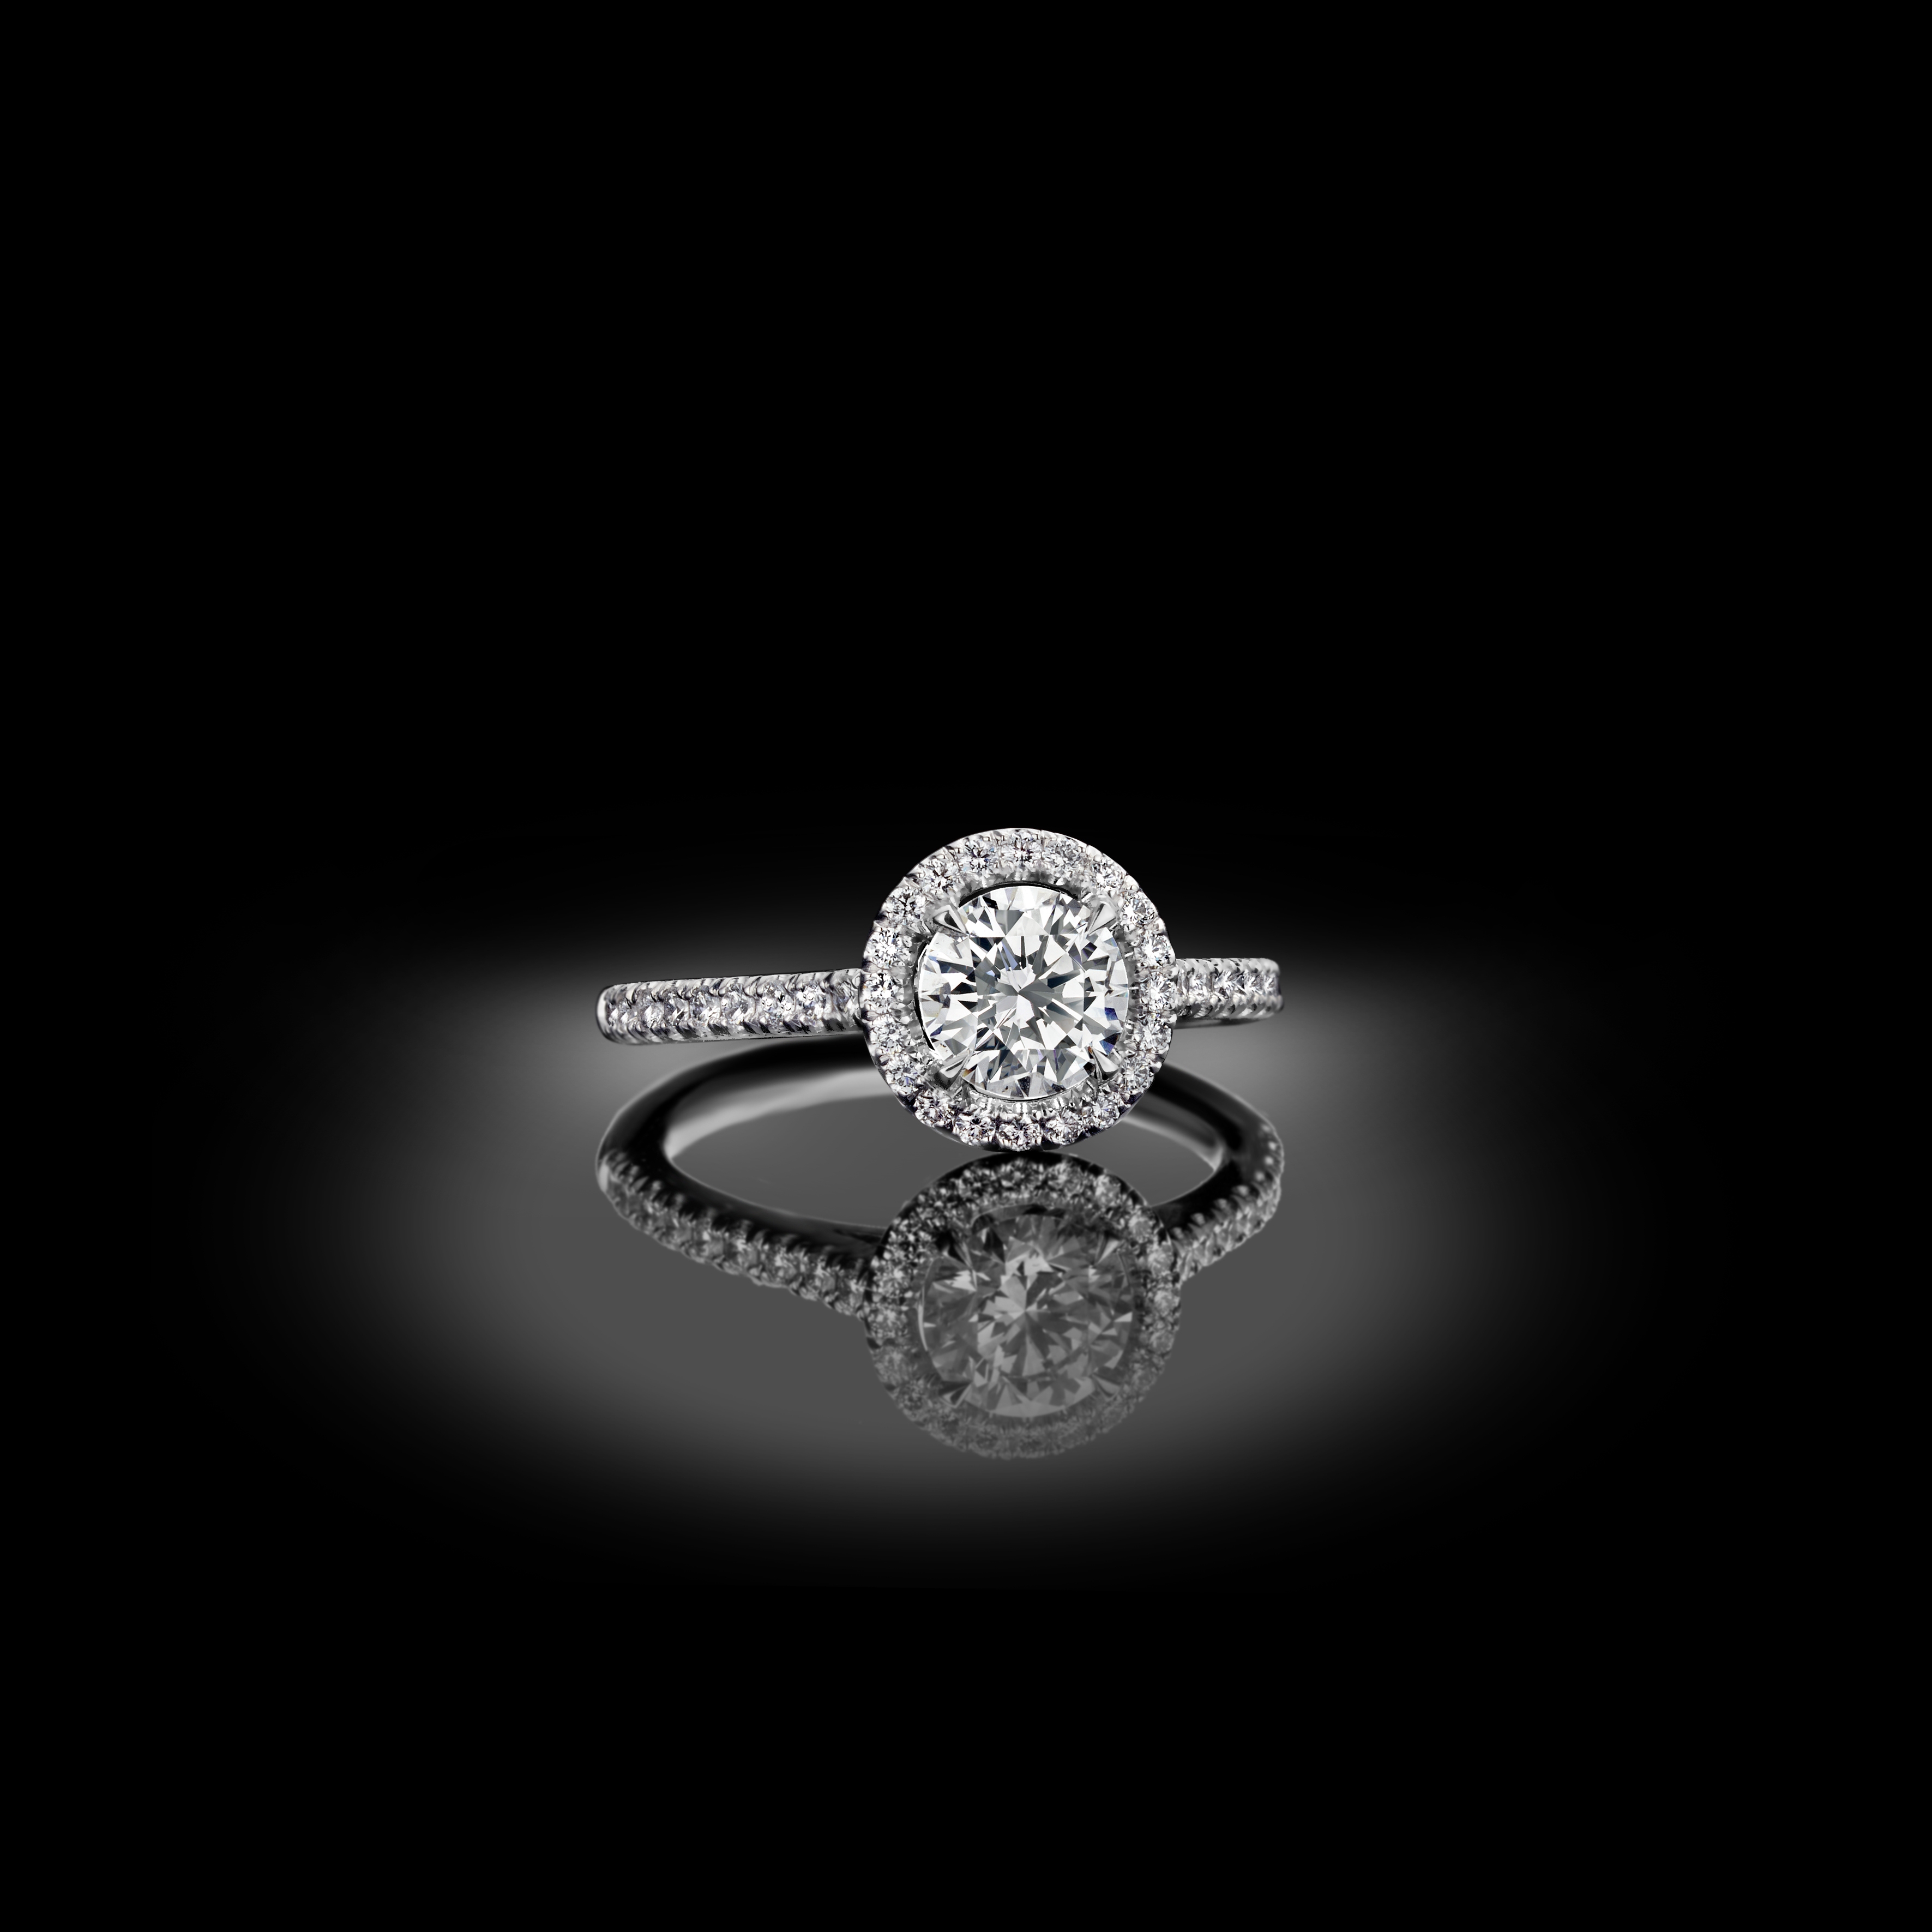 Classic and elegant, timeless halo engagement ring.